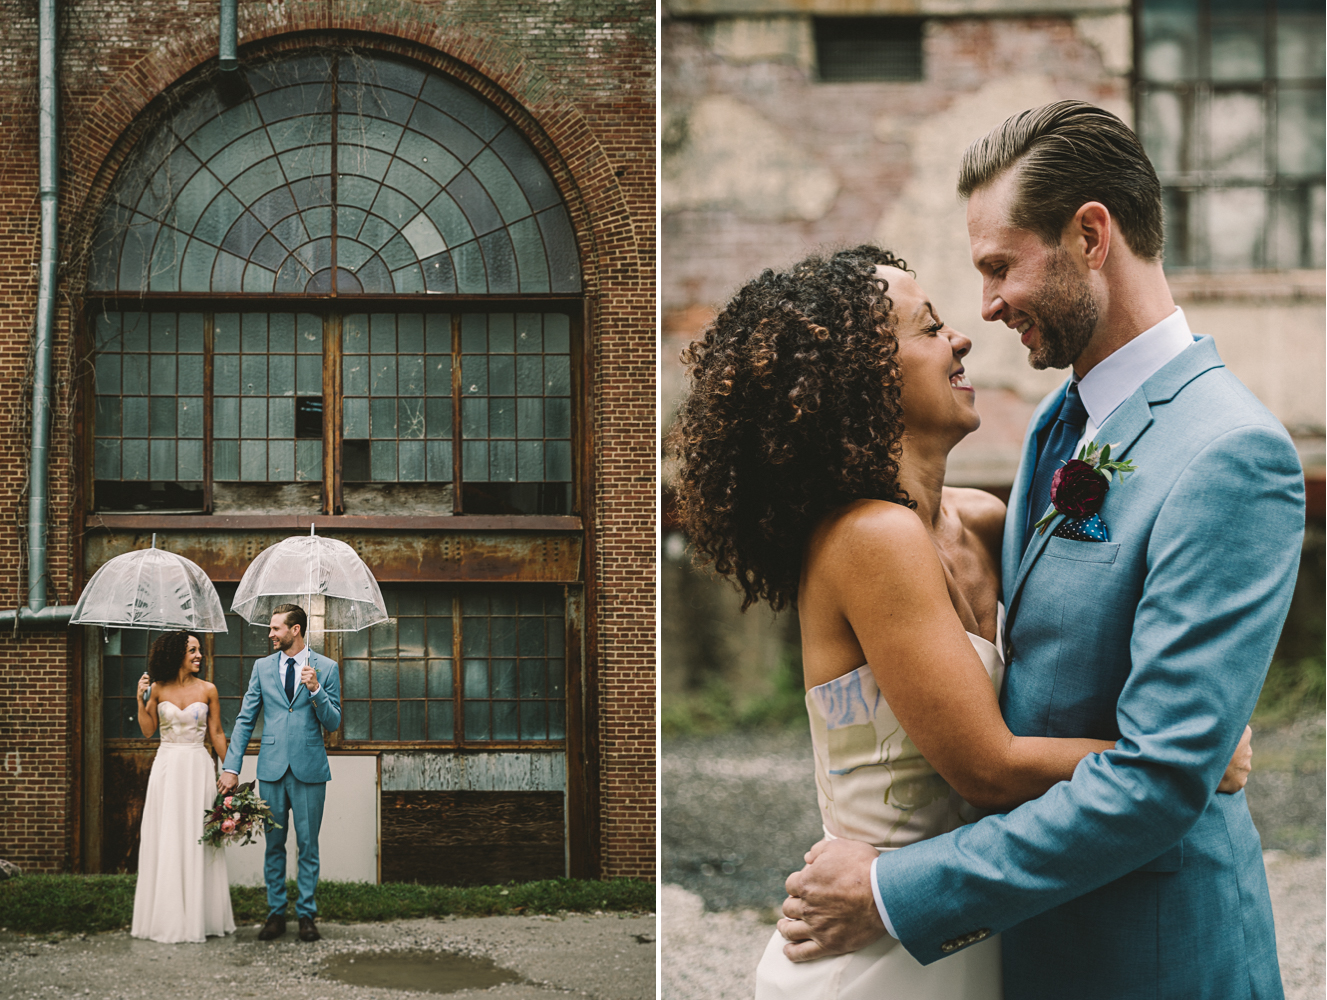 clipton mill baltimore industrial rainy wedding photographer .jpg